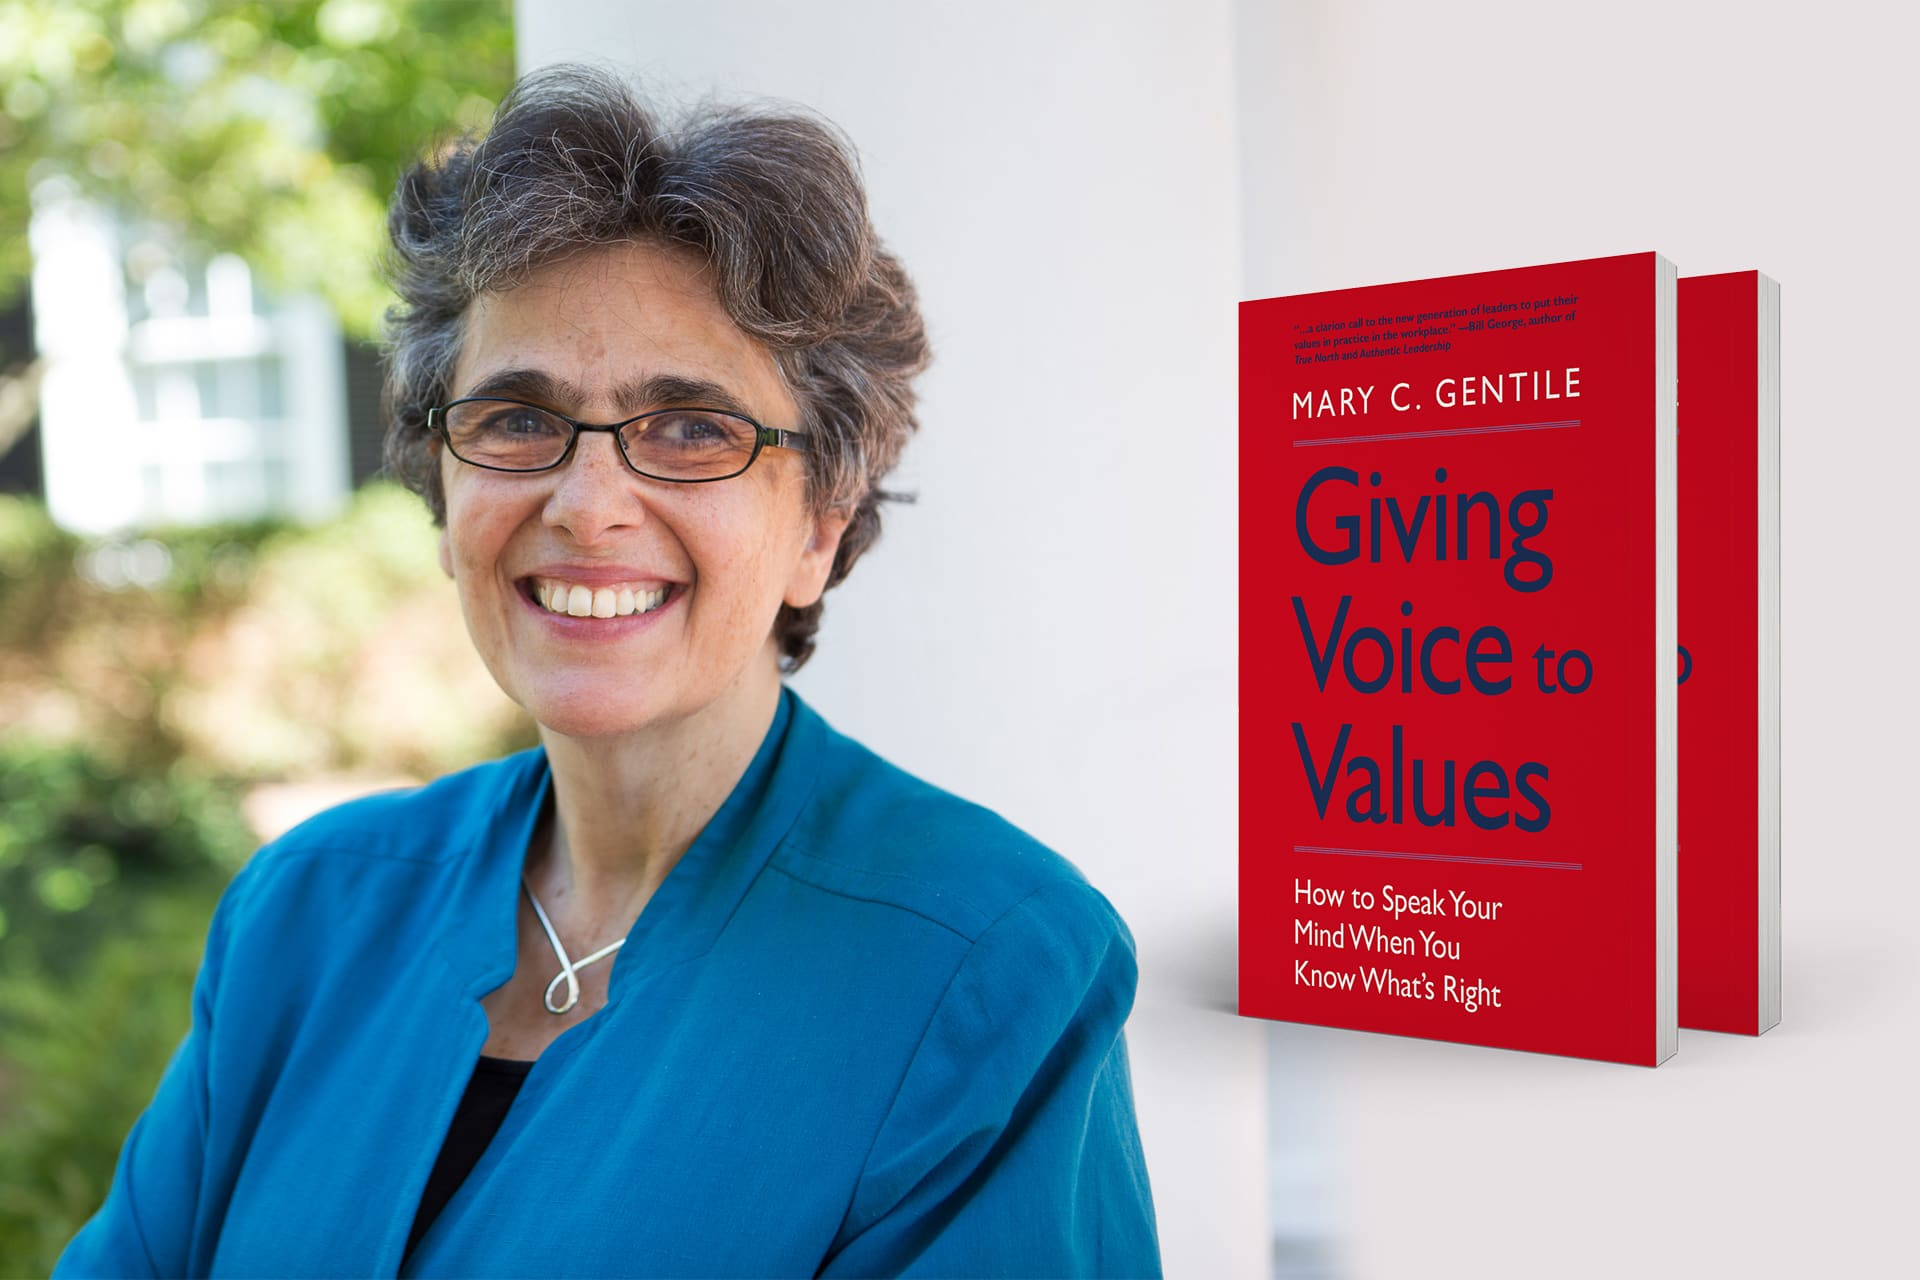 020. Mary Gentile: Giving Voice To Values